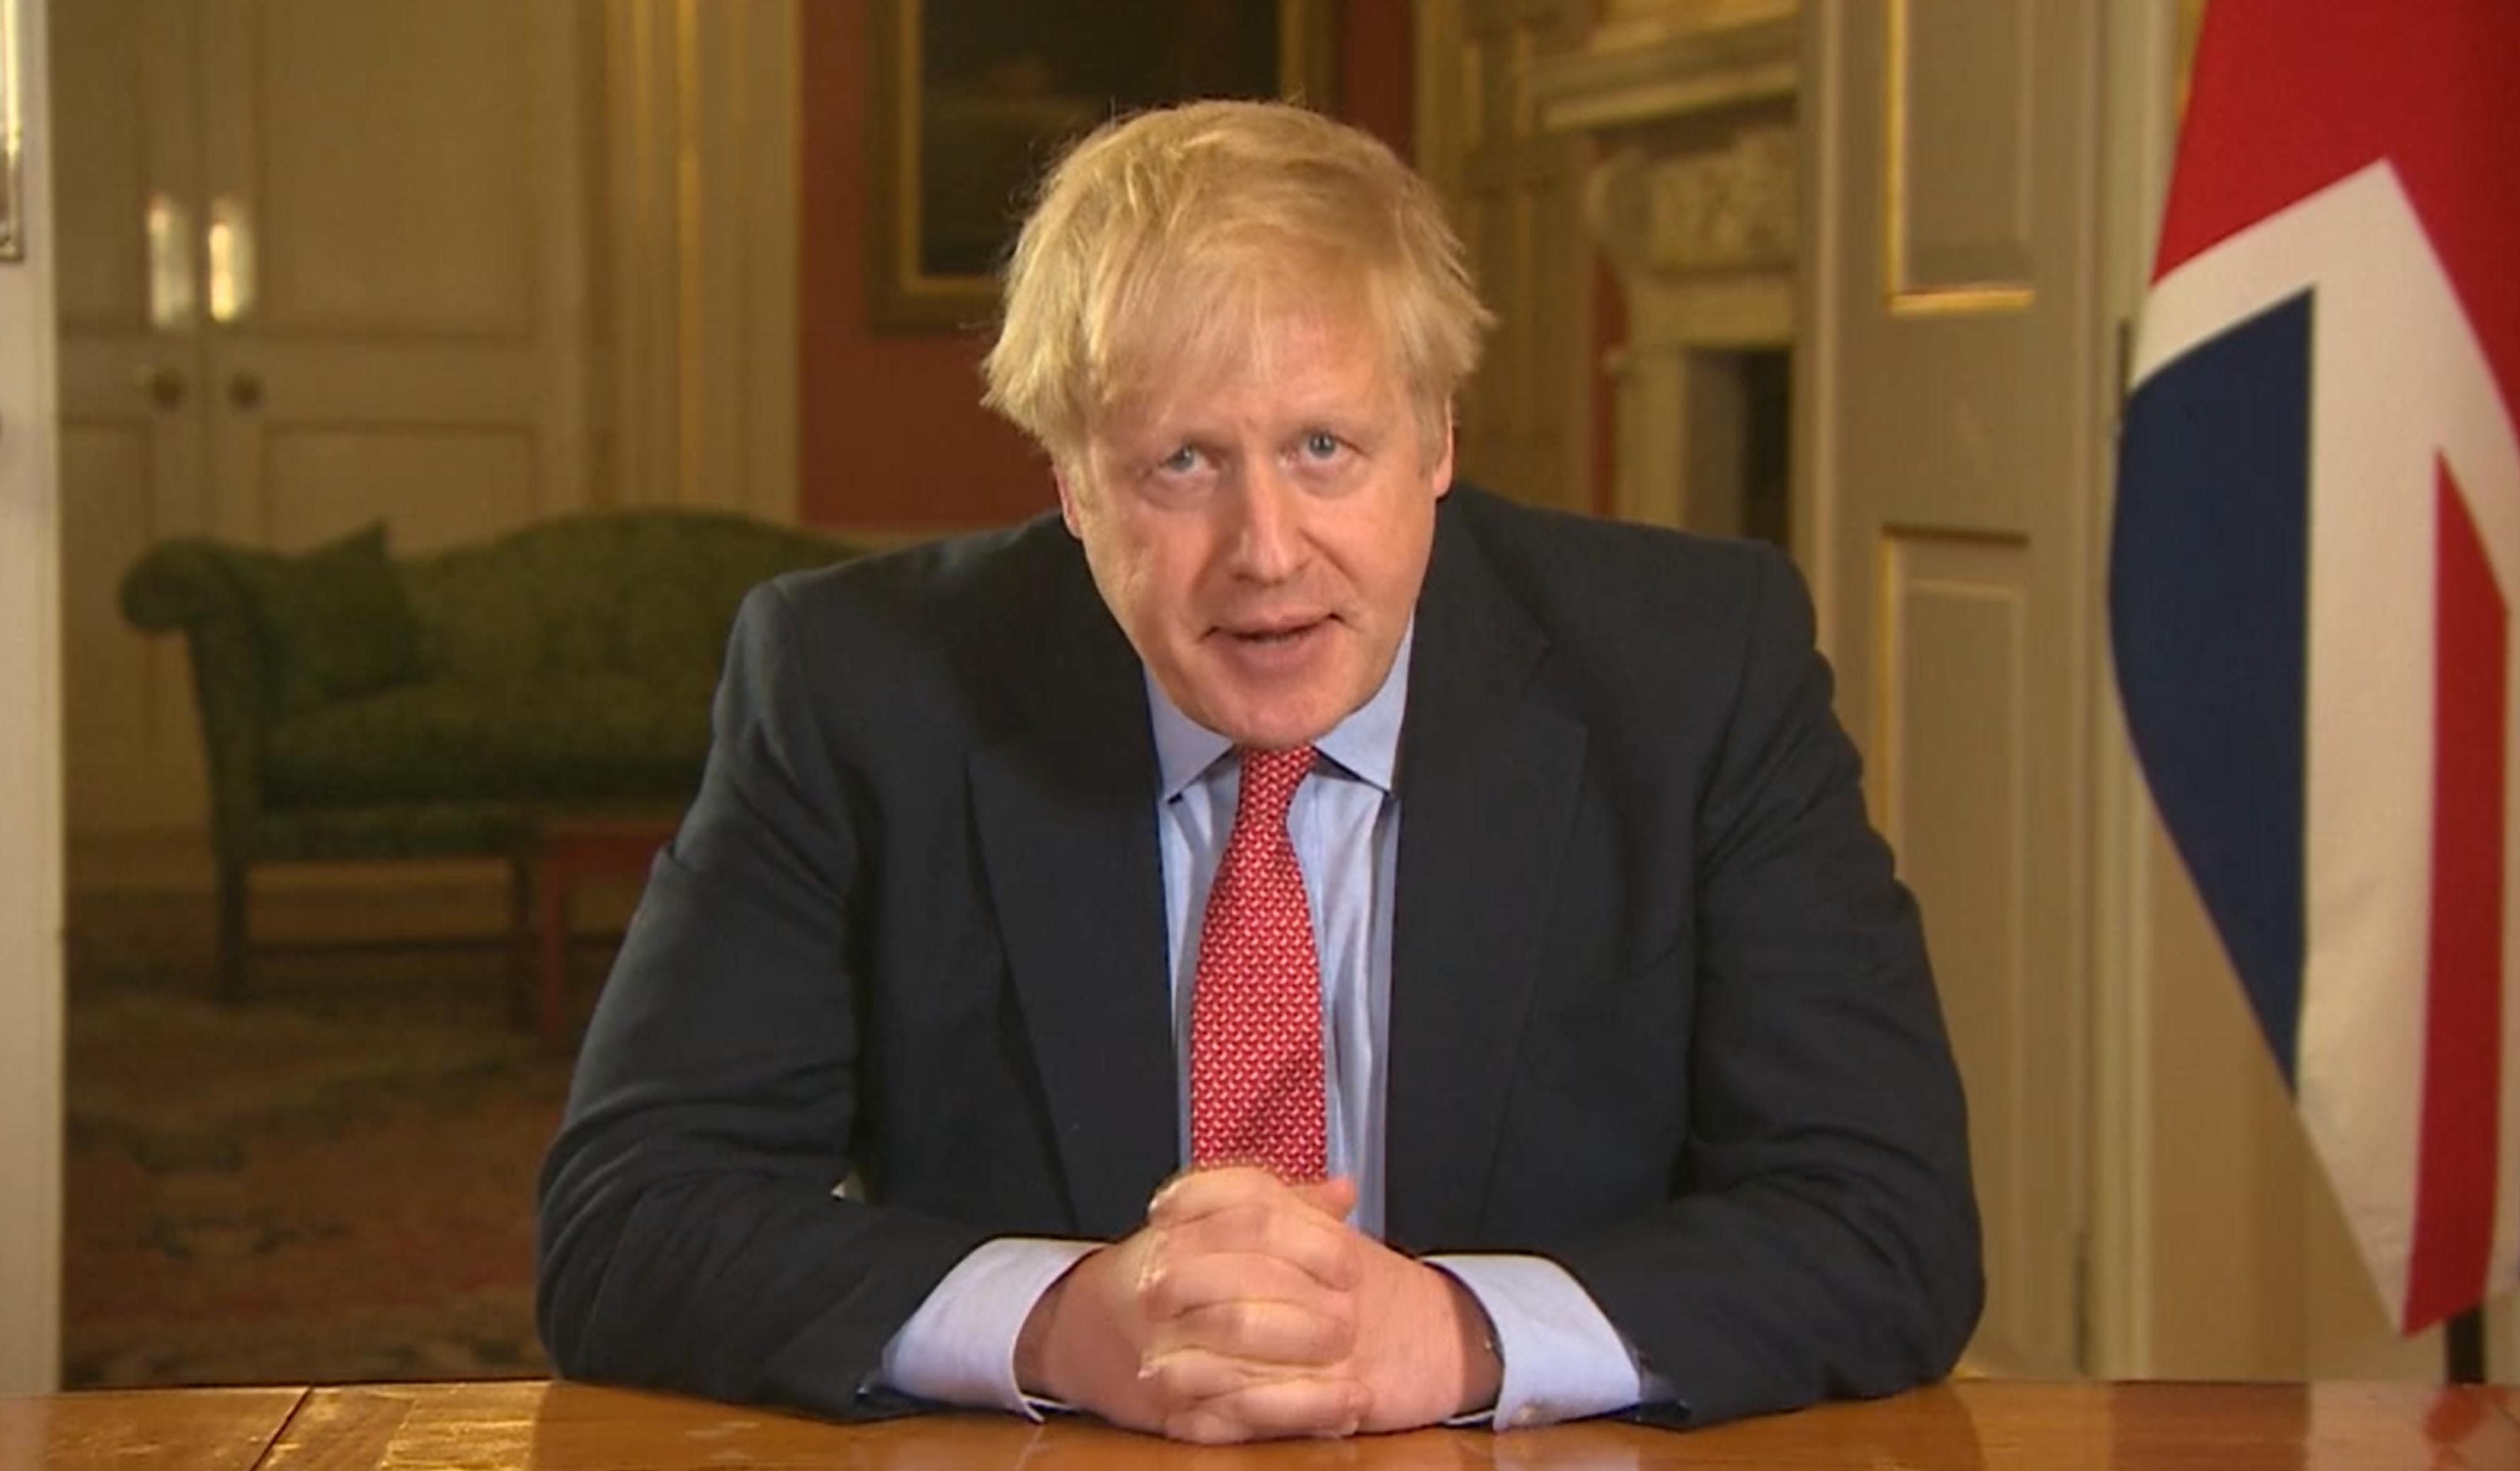 File photo dated 23/03/2020 of a screen grab of Prime Minister Boris Johnson addressing the nation from 10 Downing Street, London. The Prime Minister has said he has tested positive for coronavirus.